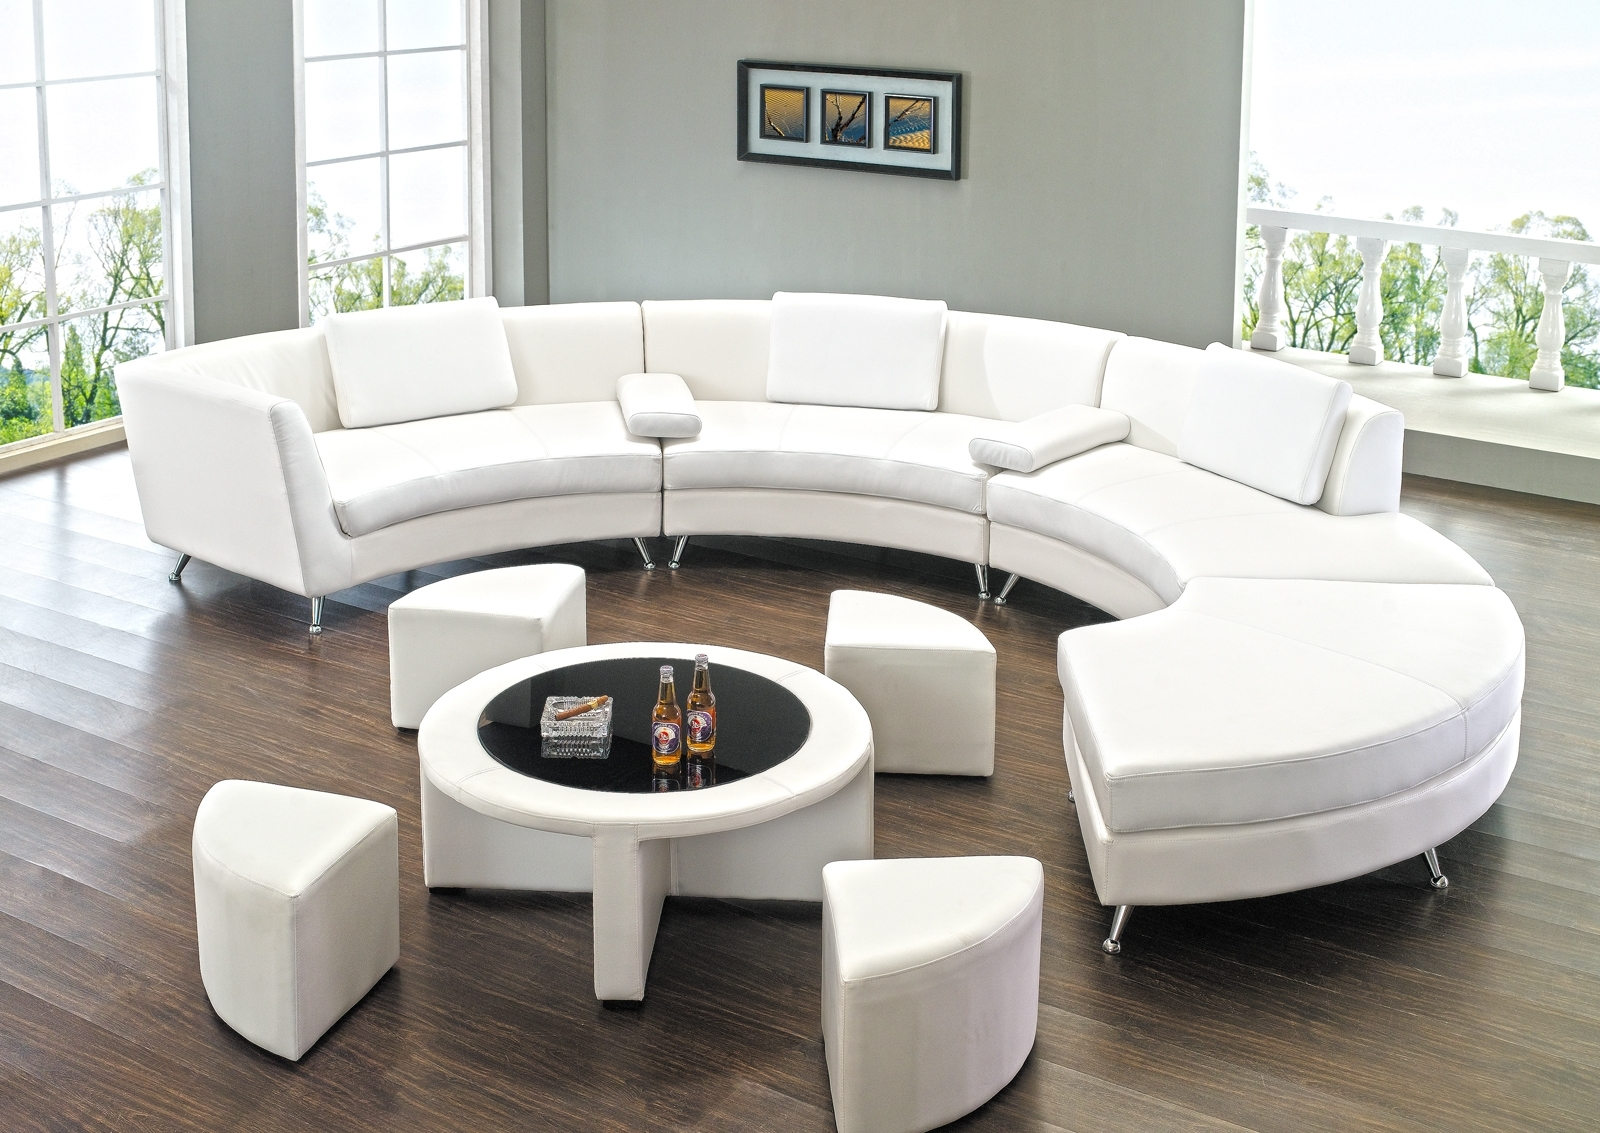 Sofas Center Rounded Sectional Sofa Curved Couch Circle Circular In Circular Sectional Sofa (#11 of 12)